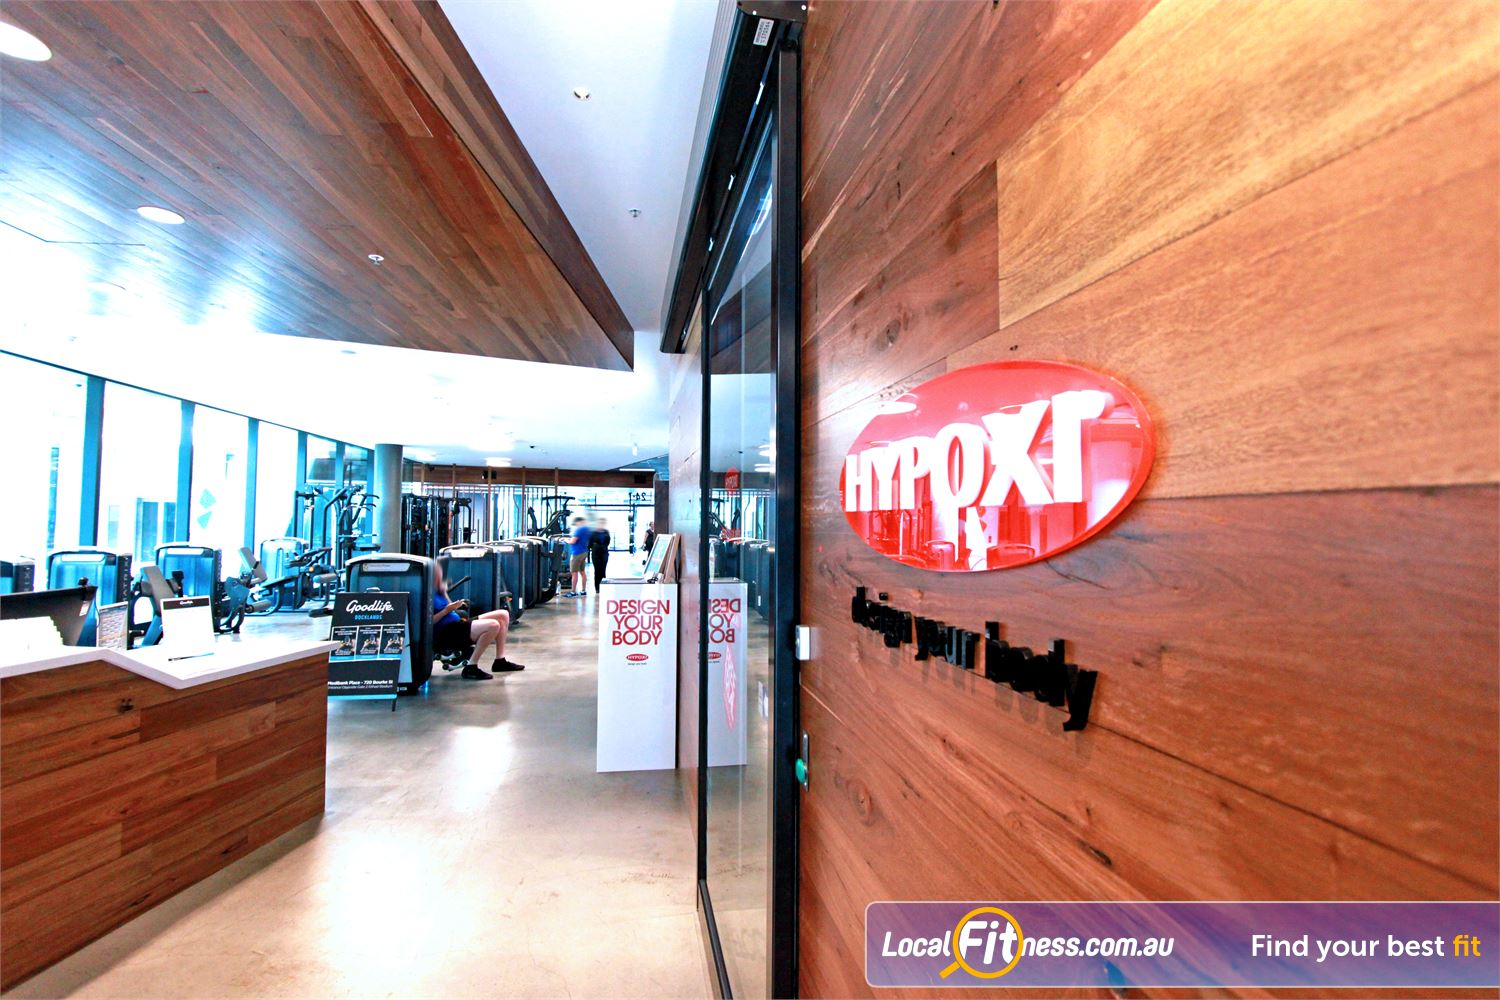 Goodlife Health Clubs Docklands Welcome to Hypoxi studios in Docklands.